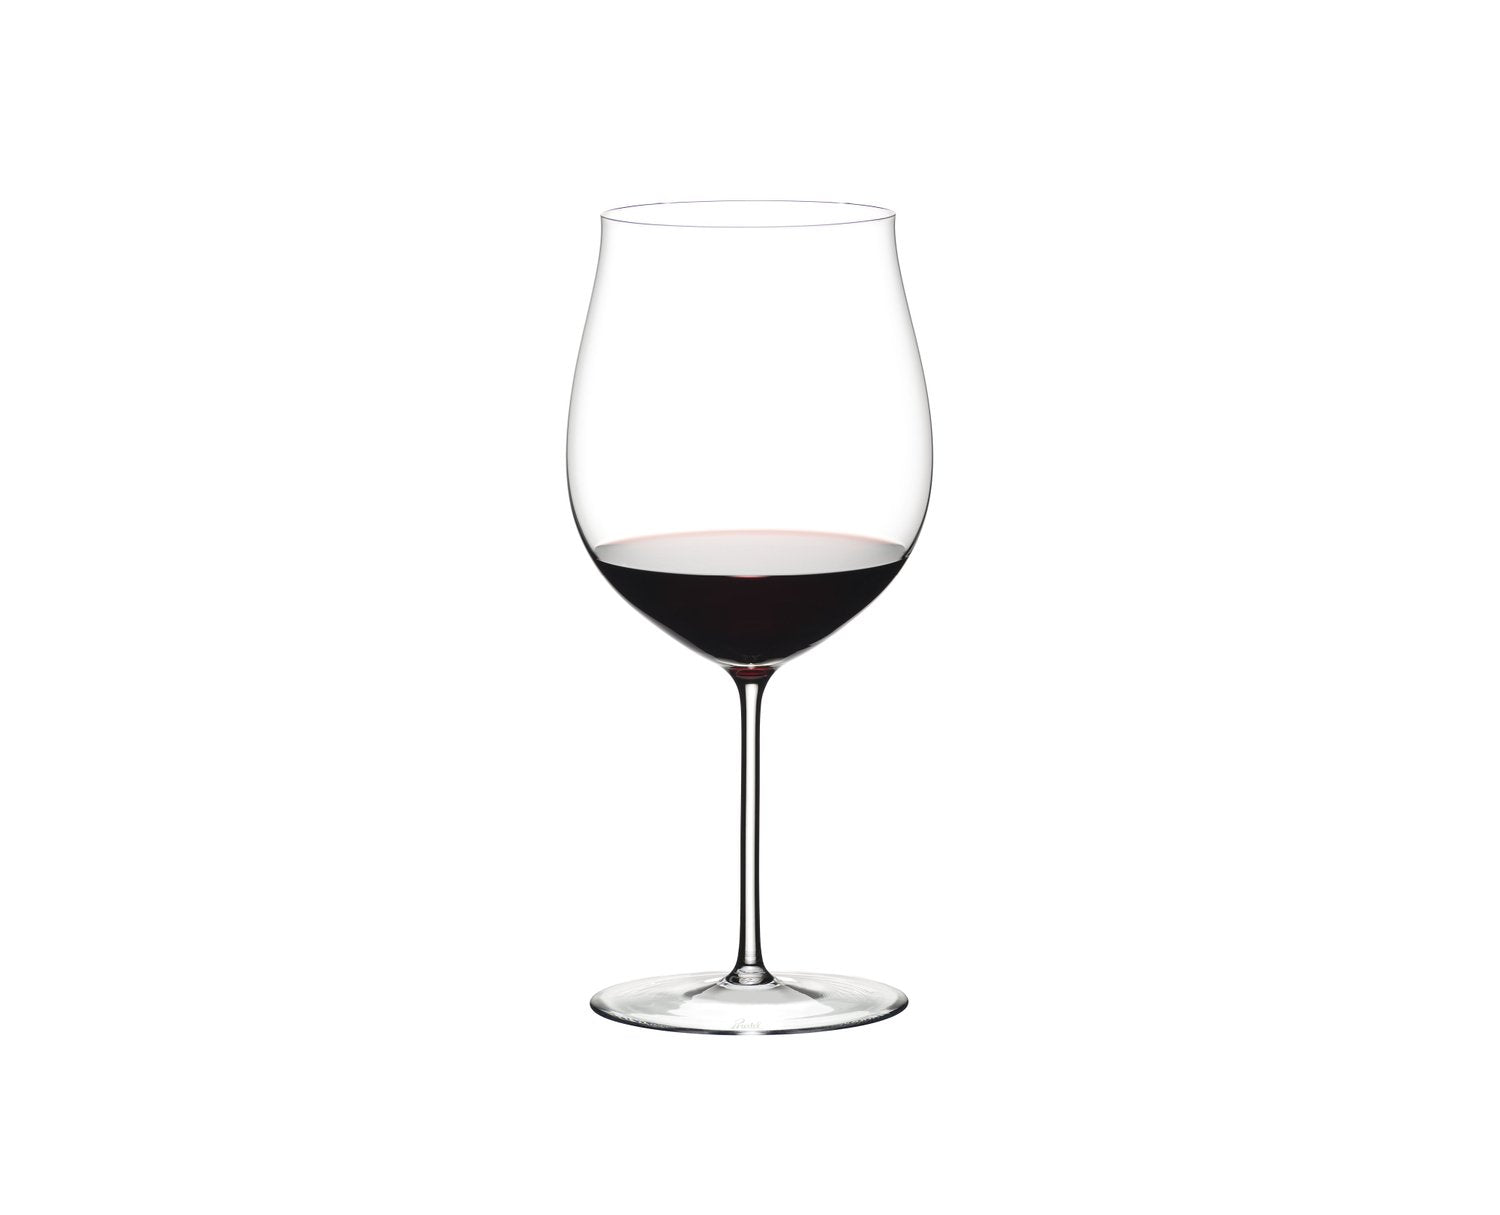 Riedel Sommeliers Grand Cru Bourgogne